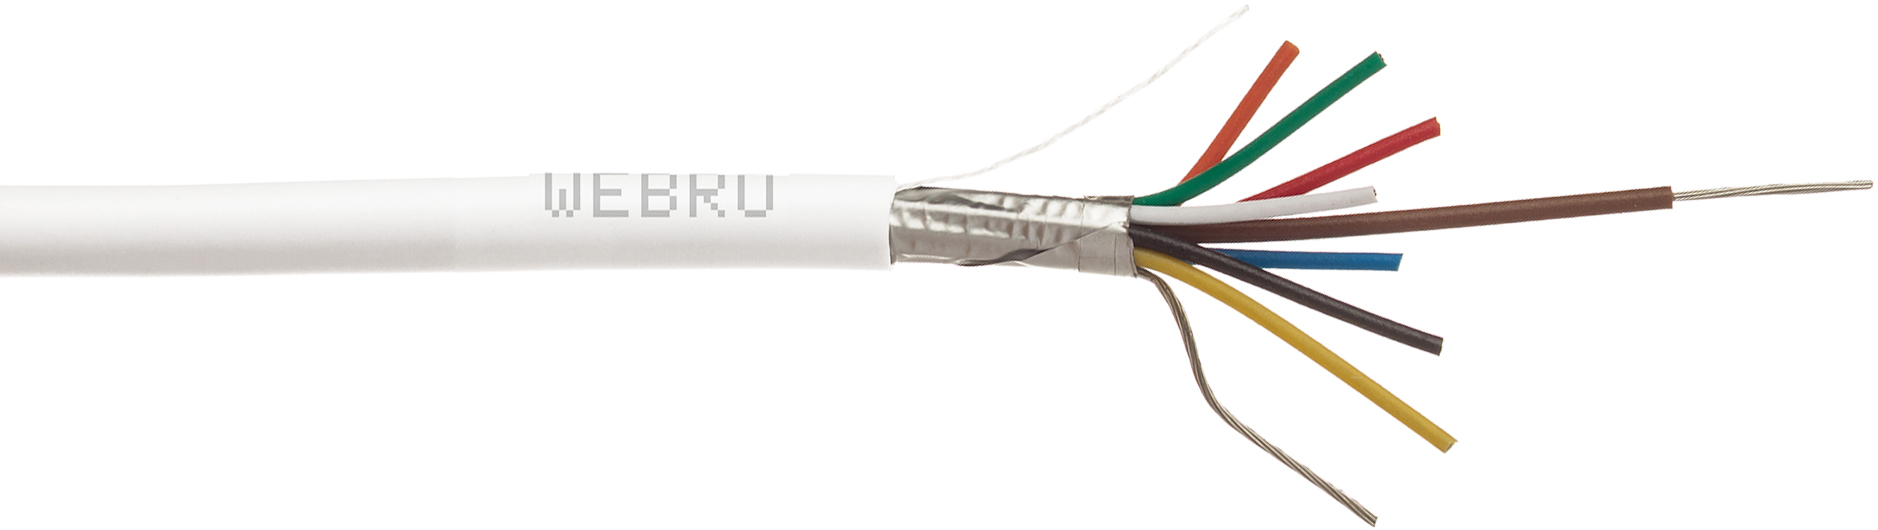 hight resolution of screened alarm cable